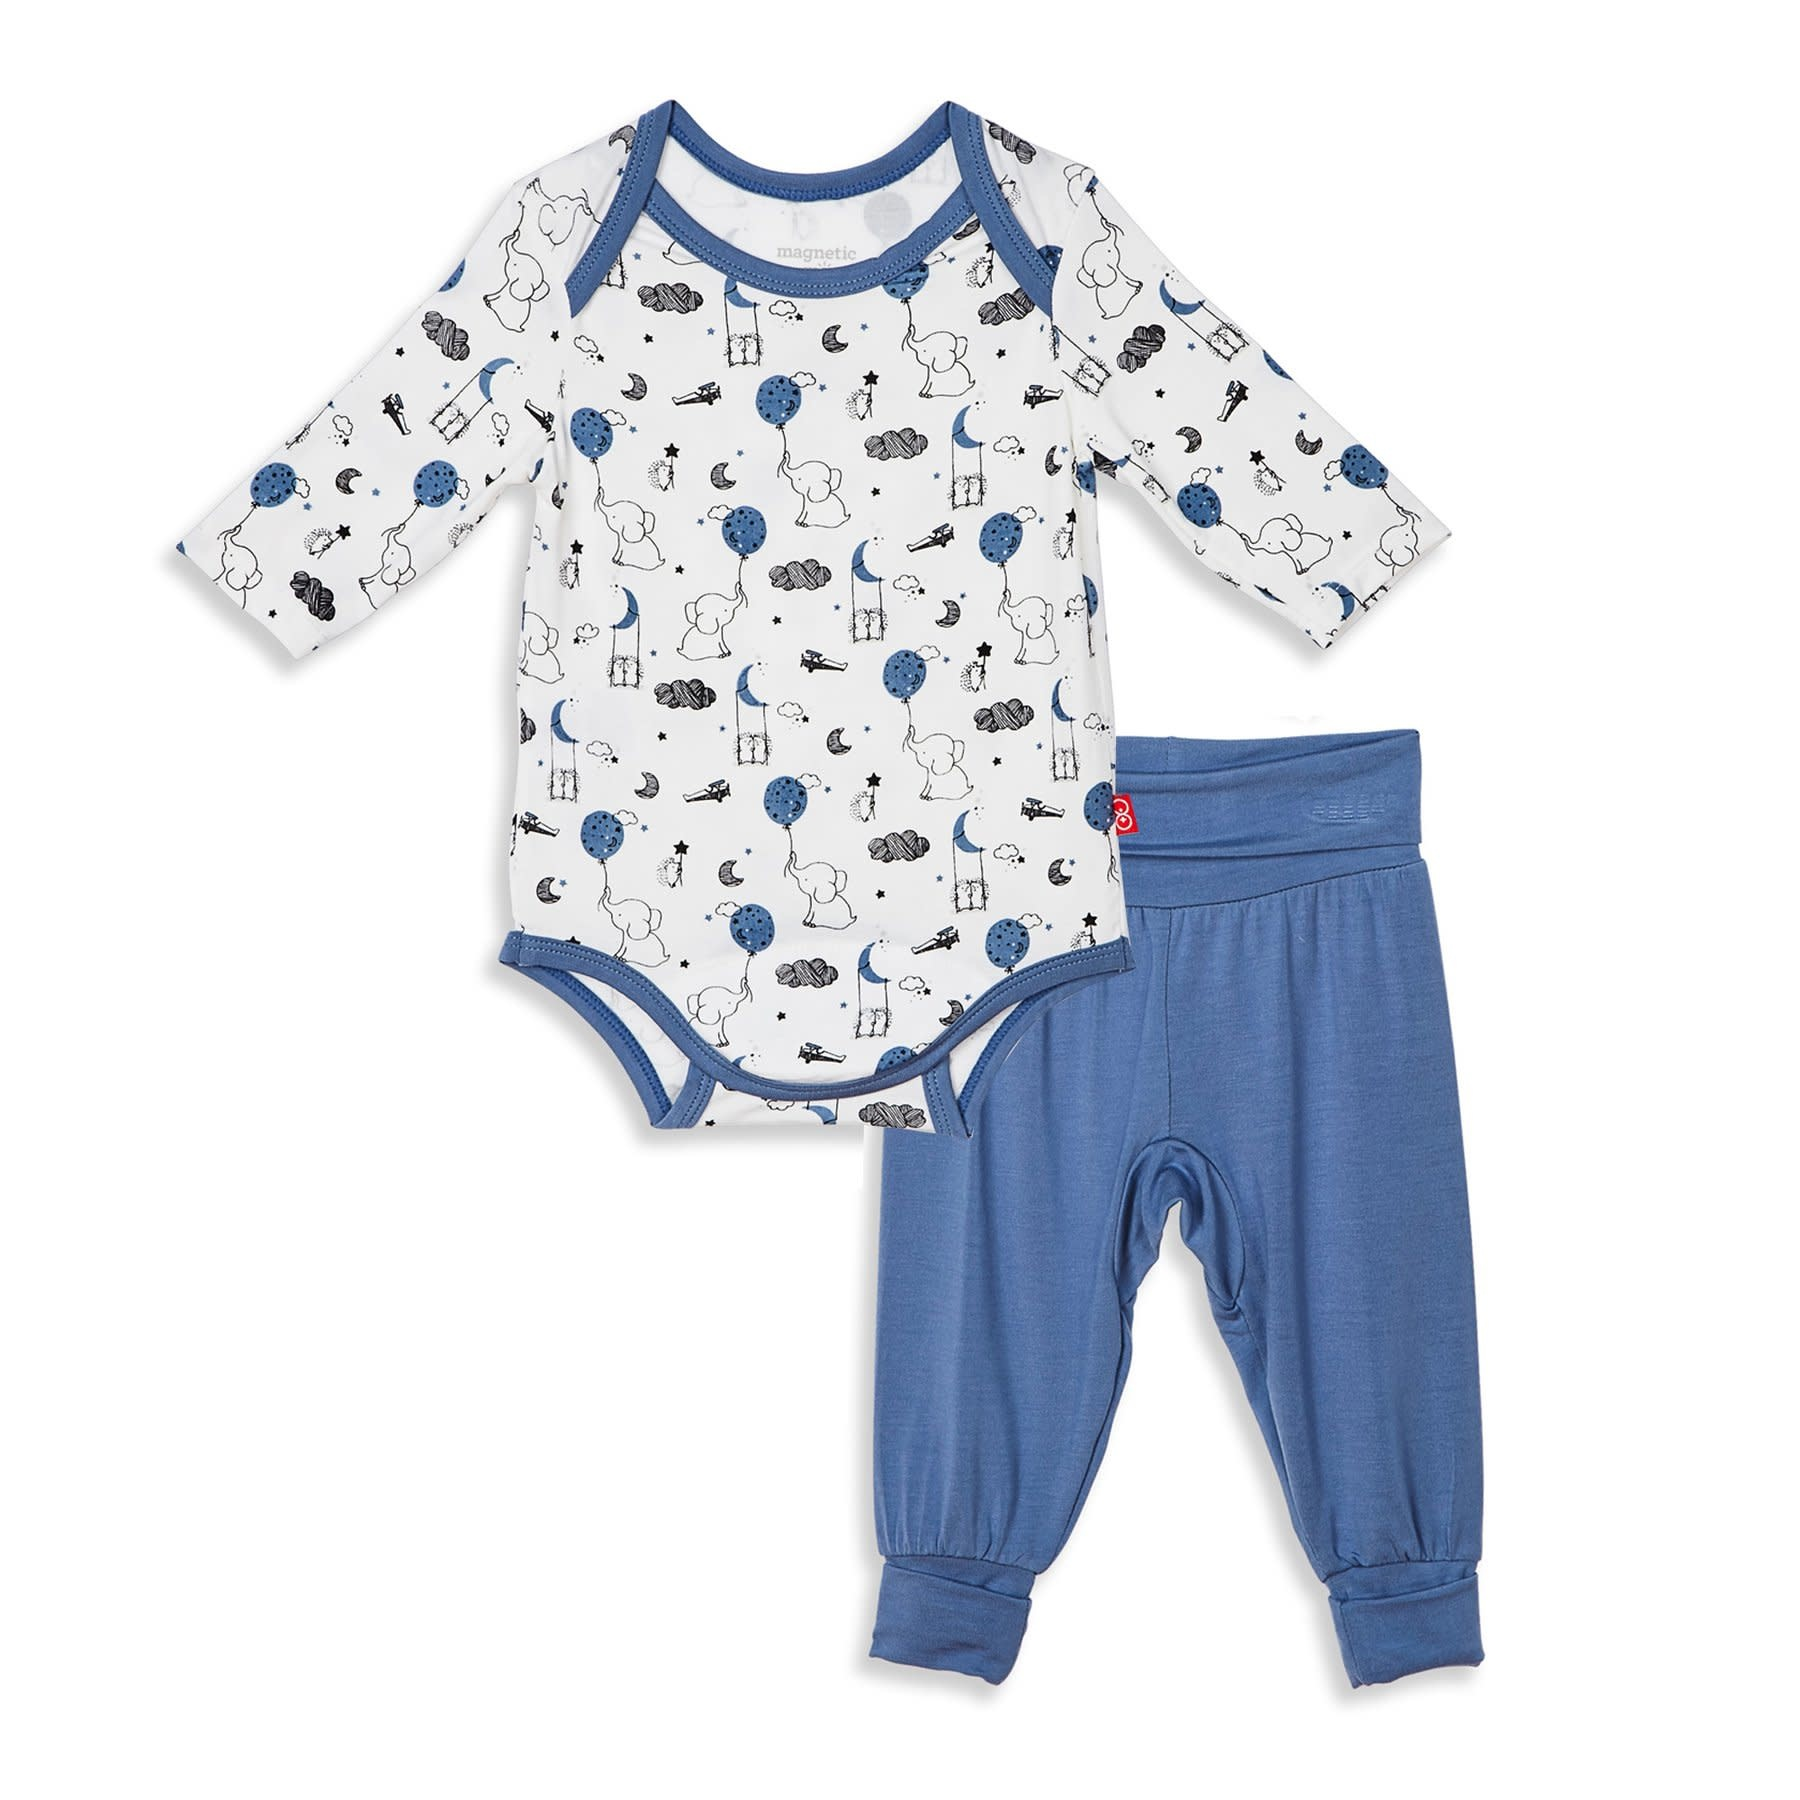 Magnificent Baby Bodysuit Set